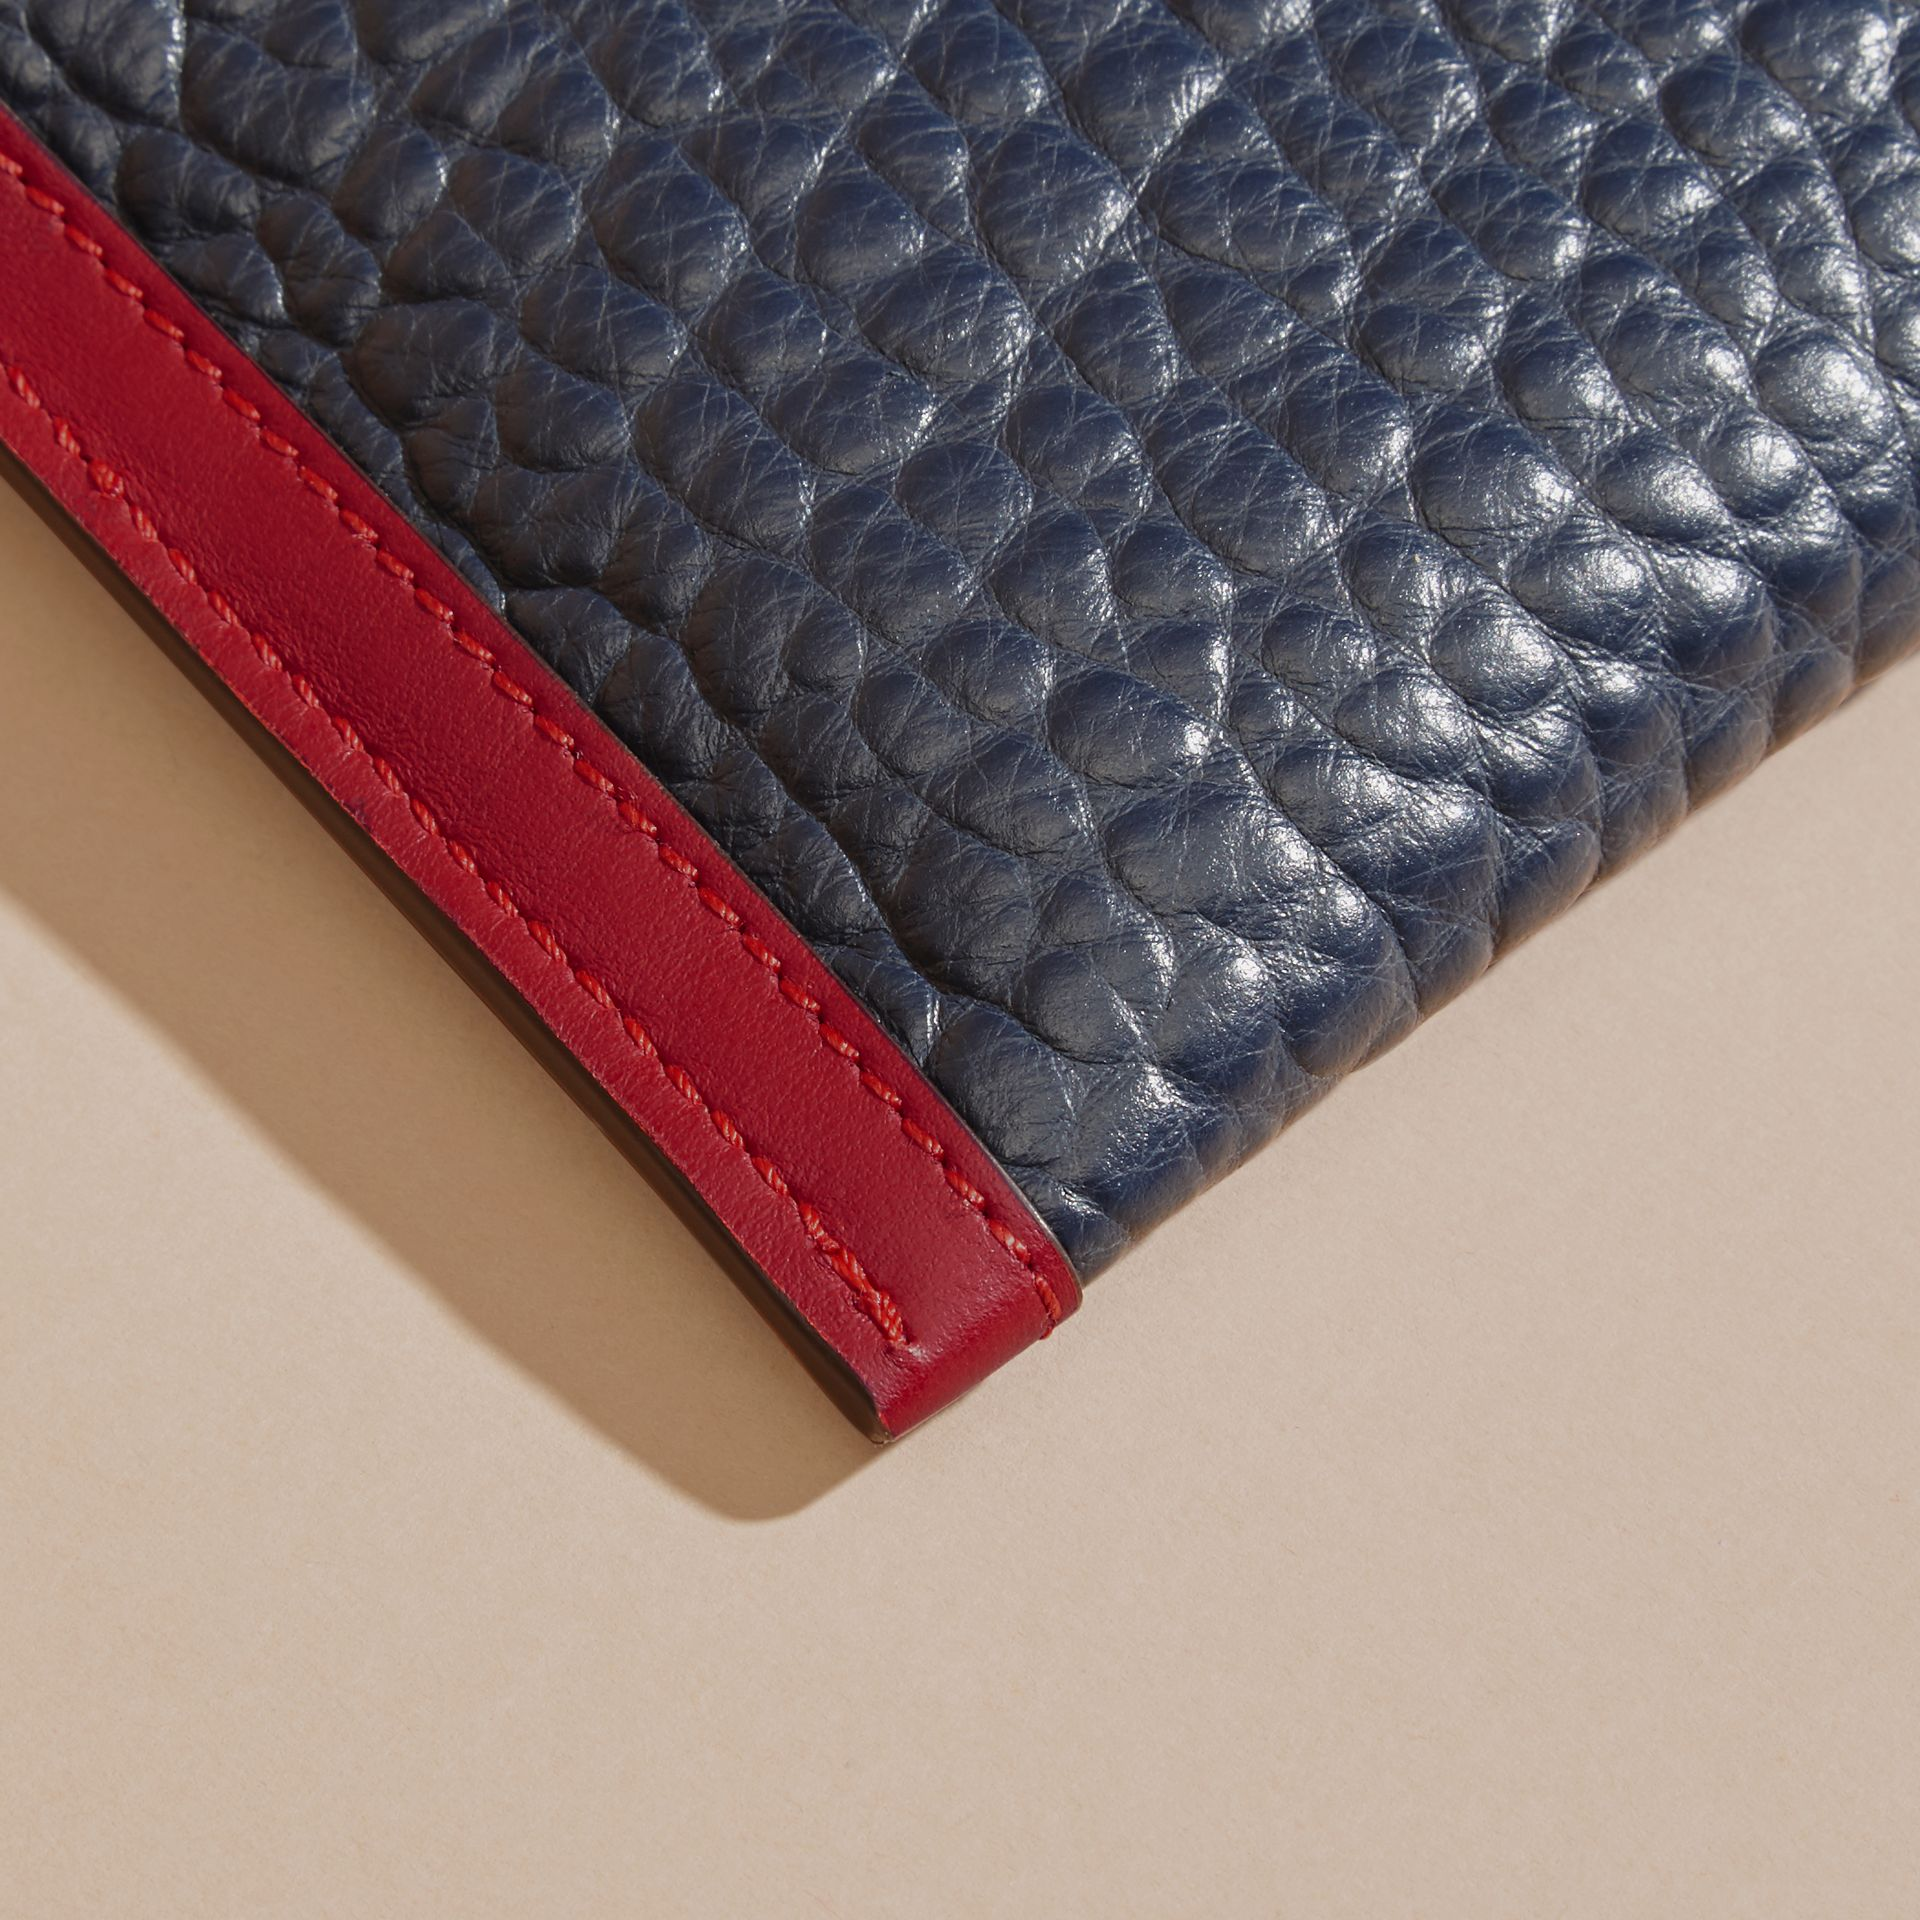 Blue crbn/parade red Contrast Border Signature Grain Leather Clutch Bag - gallery image 7